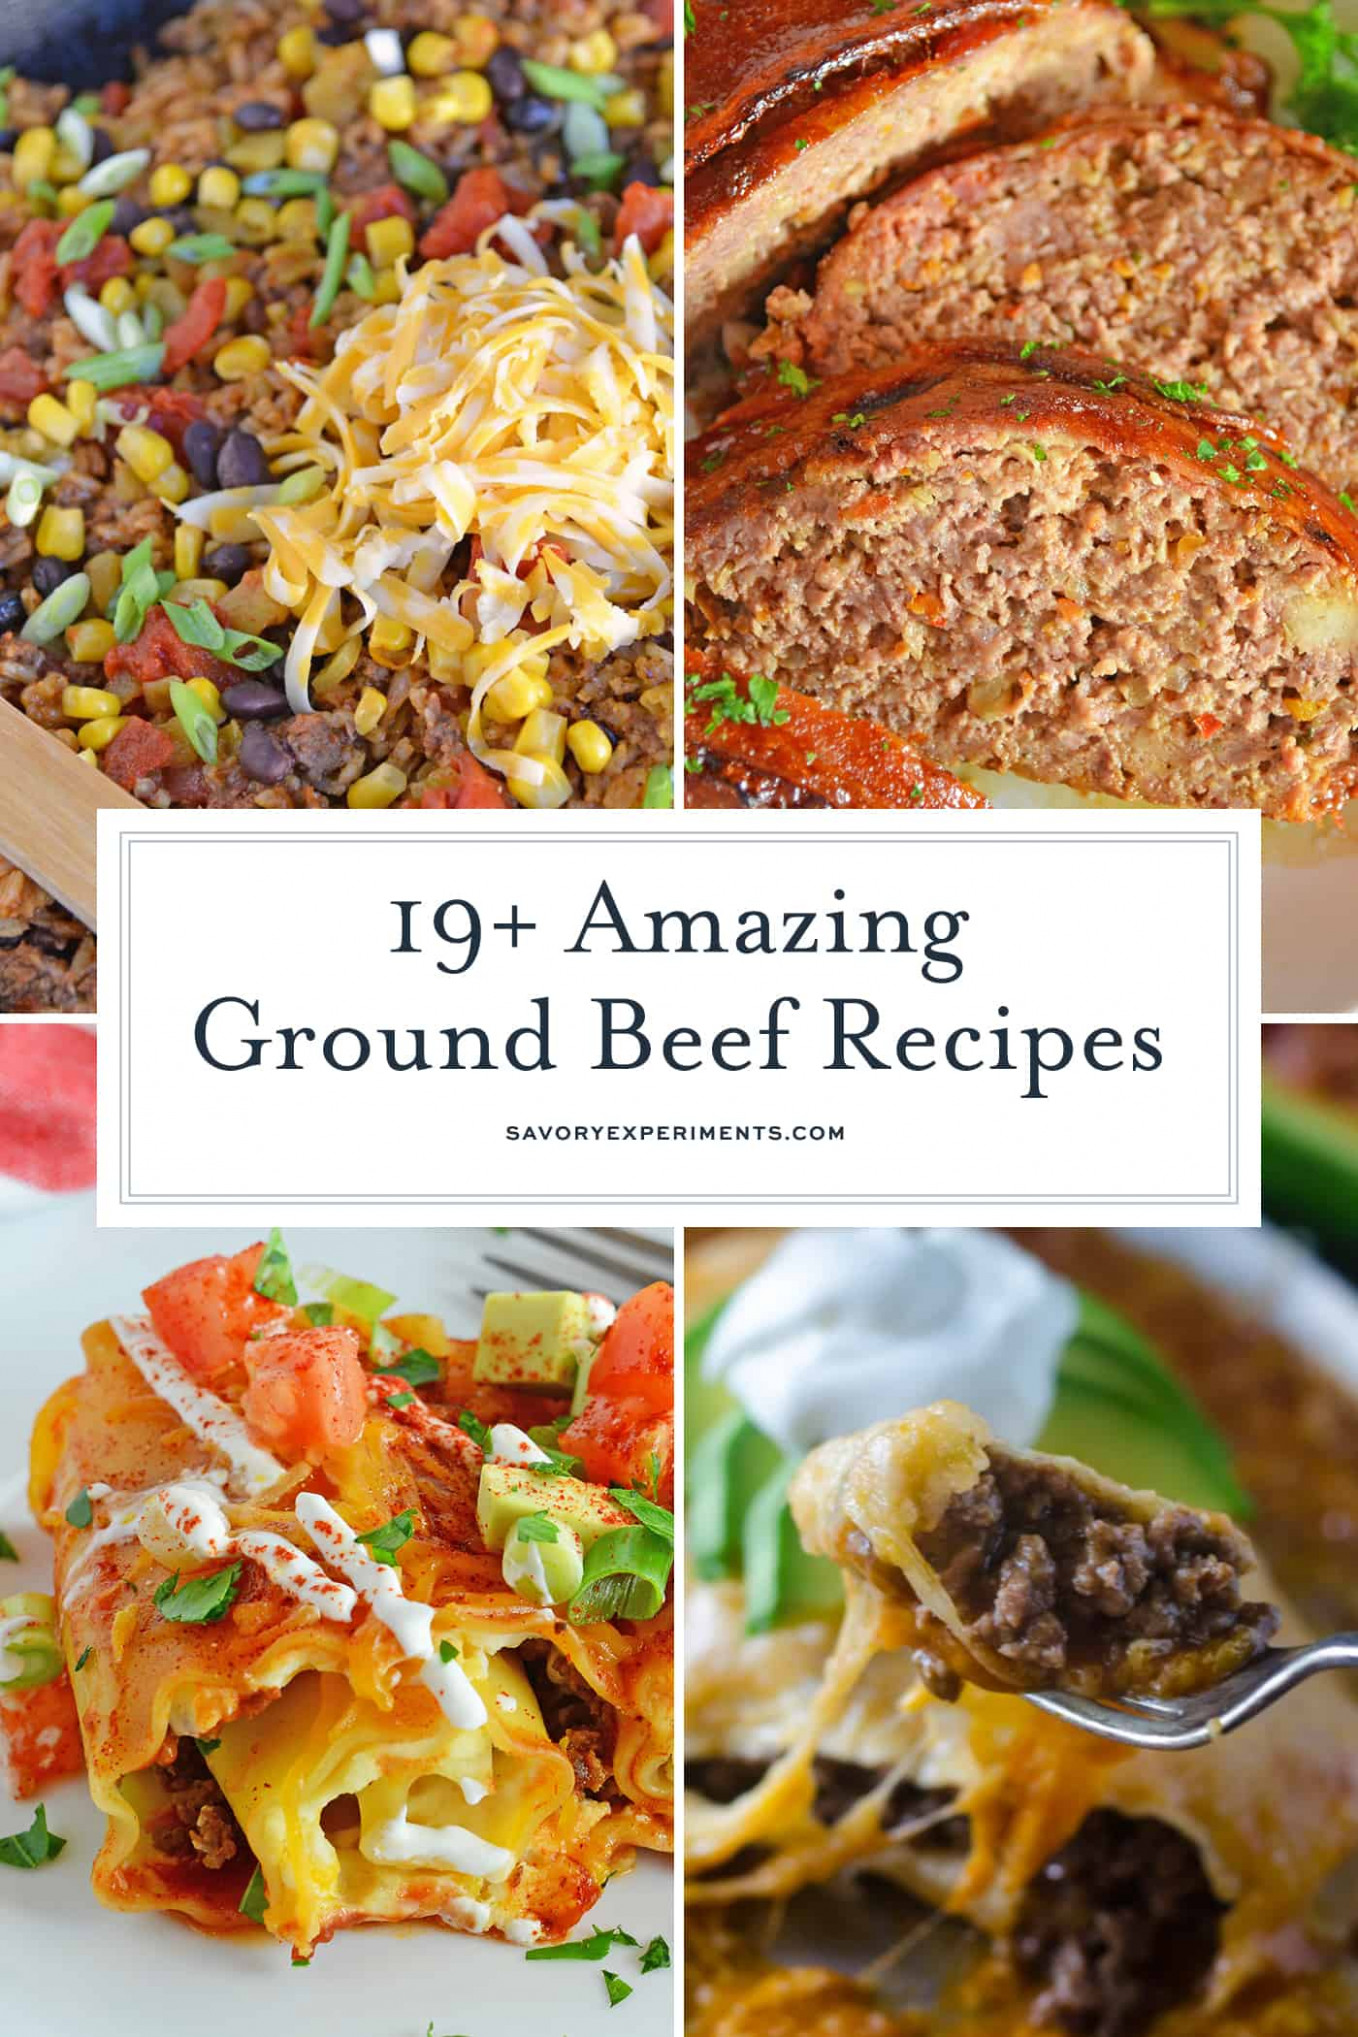 14 Amazing Ground Beef Recipes - Best Ground Beef Recipes - dinner recipes hamburger